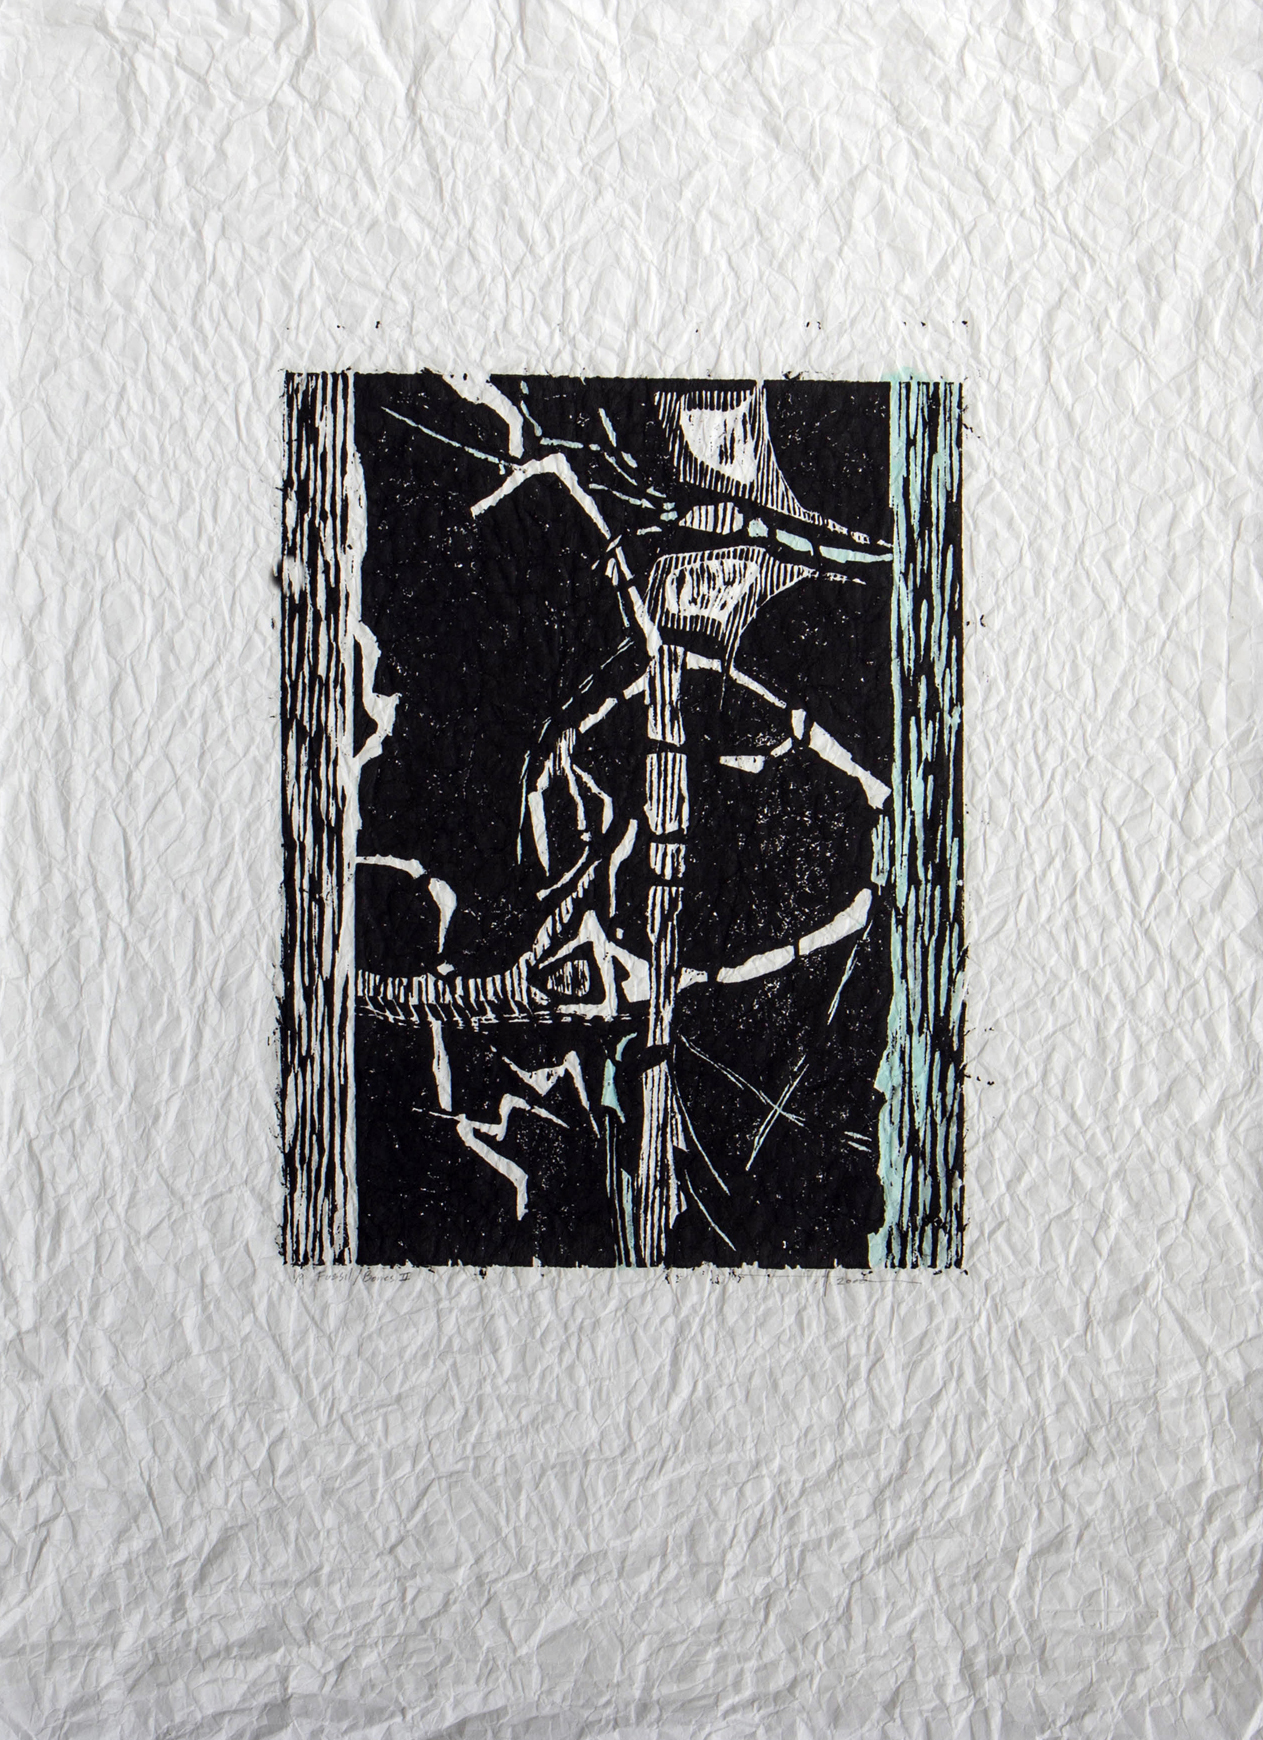 "Fossil / Bones ll , BC  Woodcut on Distressed Rice Paper 14"" x 10.5"" 2000 / Silence Exhibition 1/9 Framed / $450"